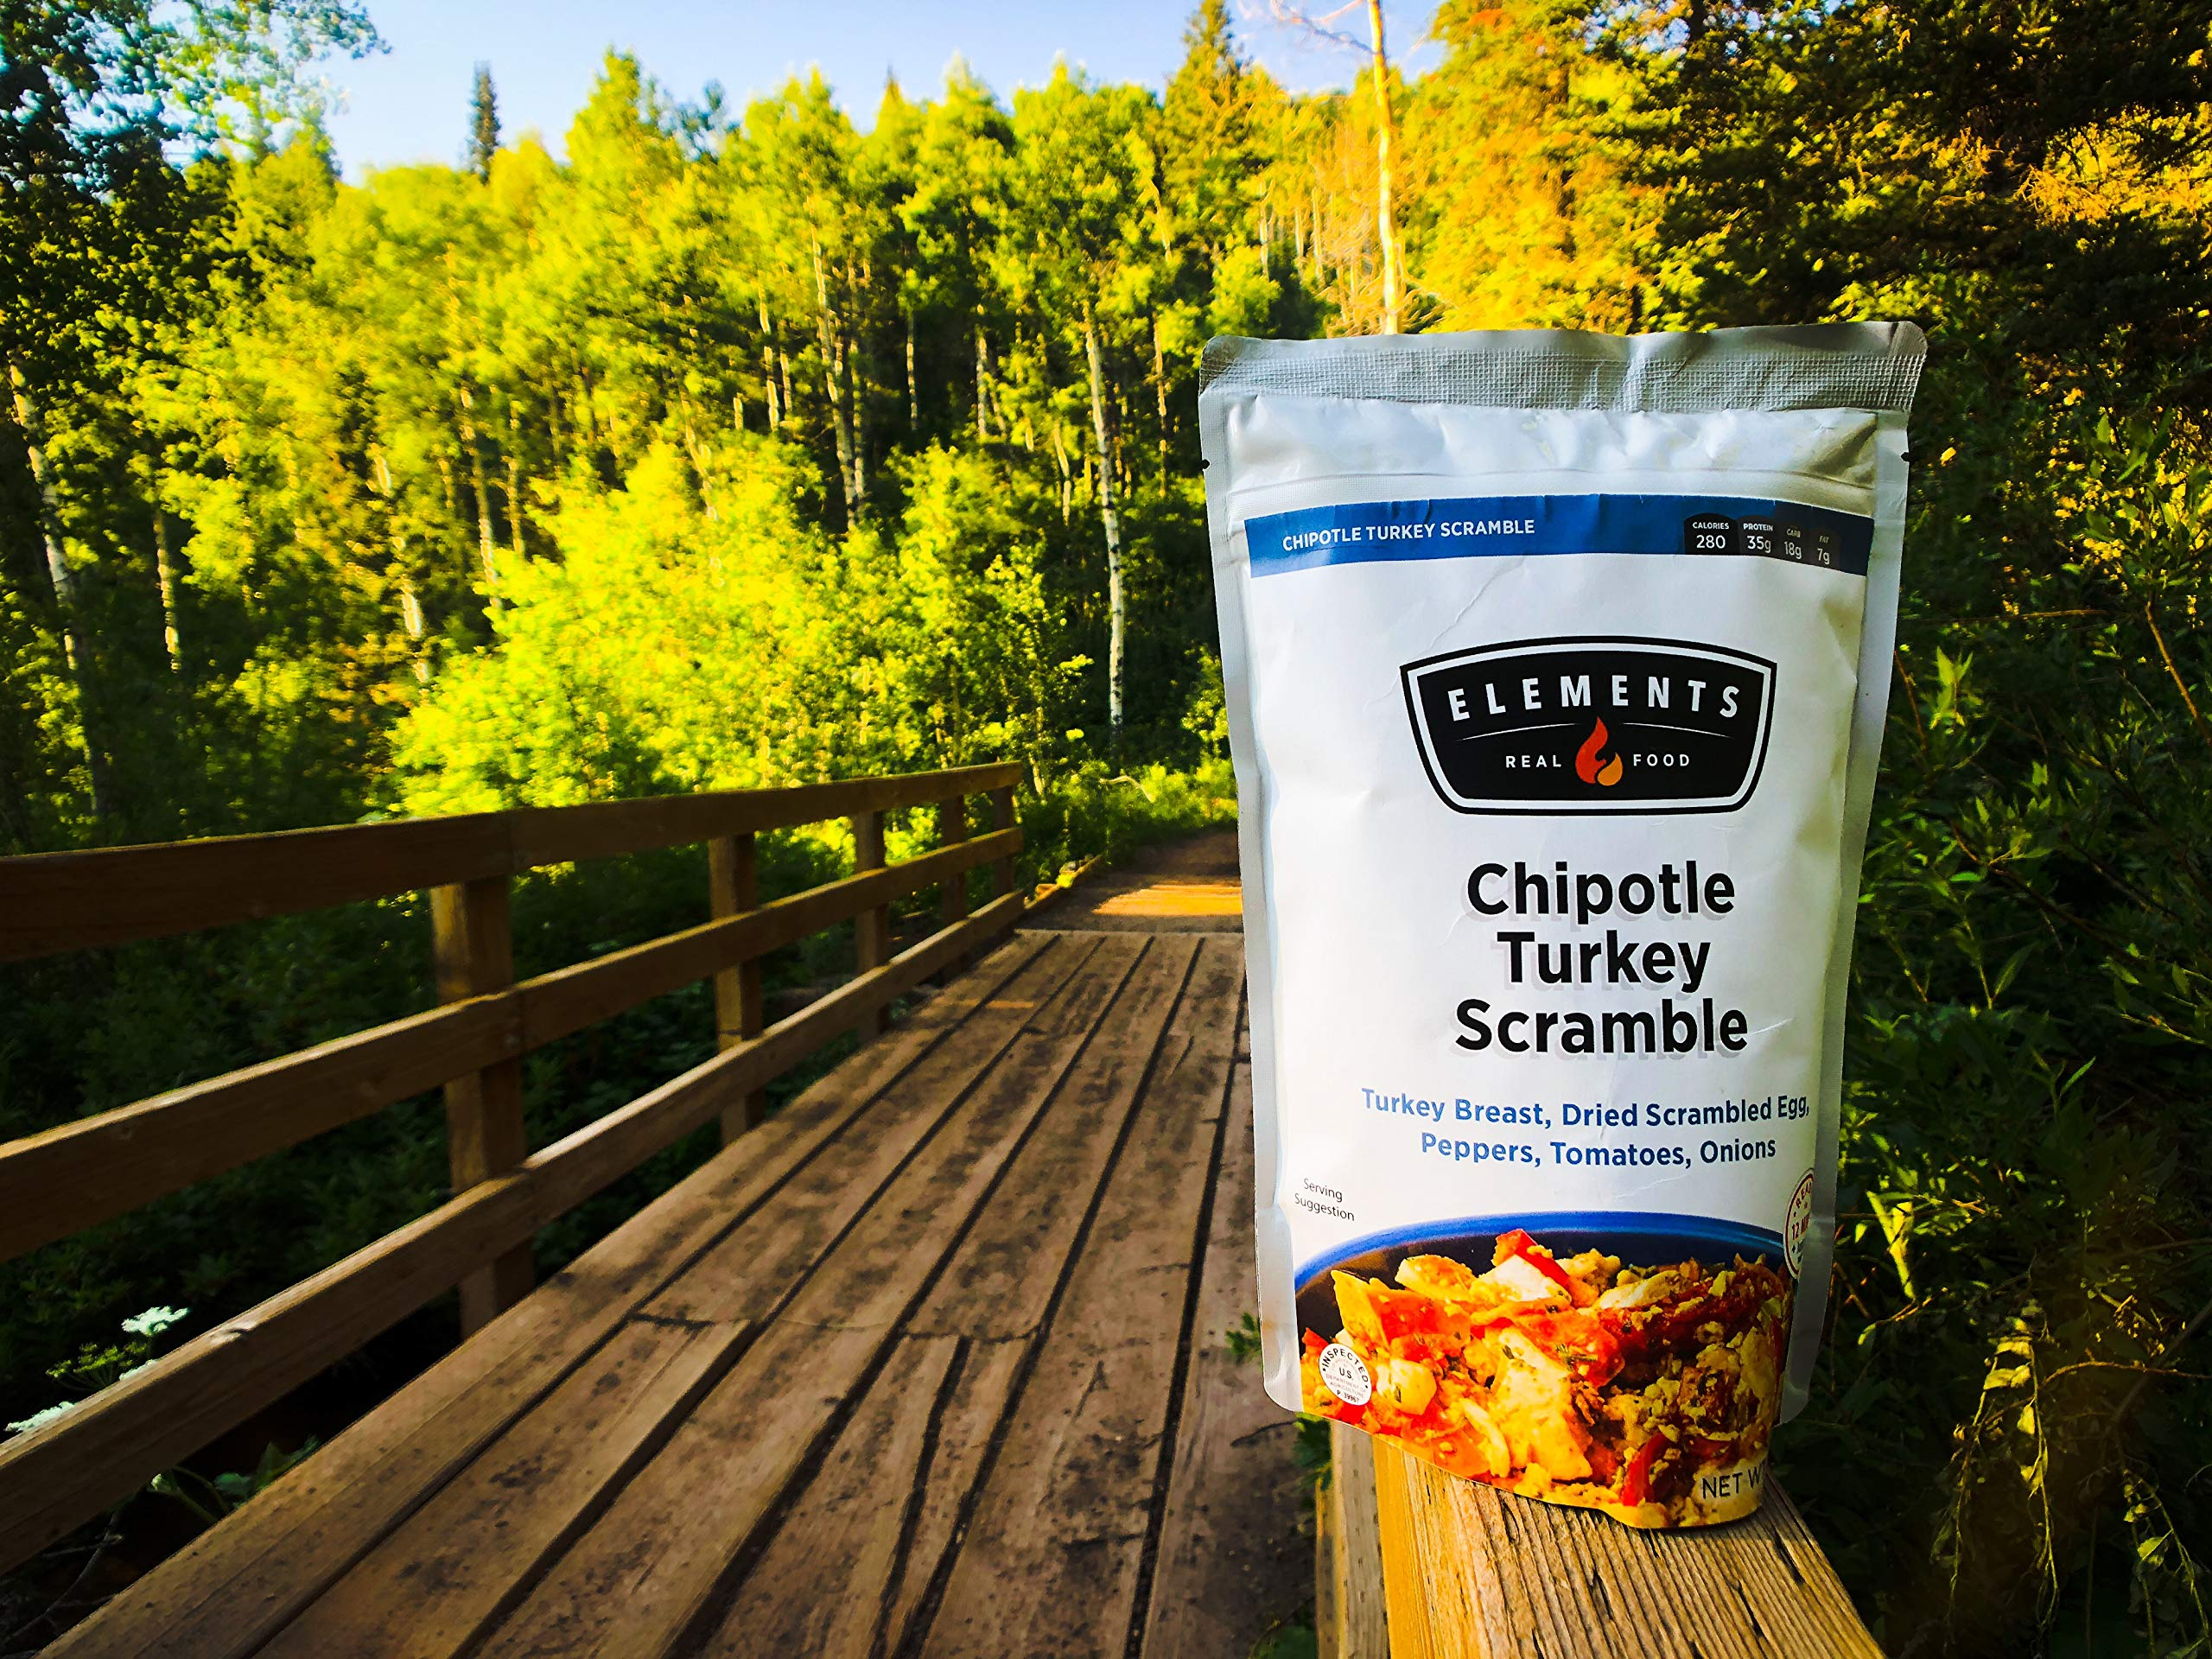 Elements Meals | Chipotle Turkey Scramble | 5-Pack | Healthy Freeze Dried Meals | Paleo-Friendly | Delicious, Backpacking and Camping Food | High Protein by Elements (Image #3)